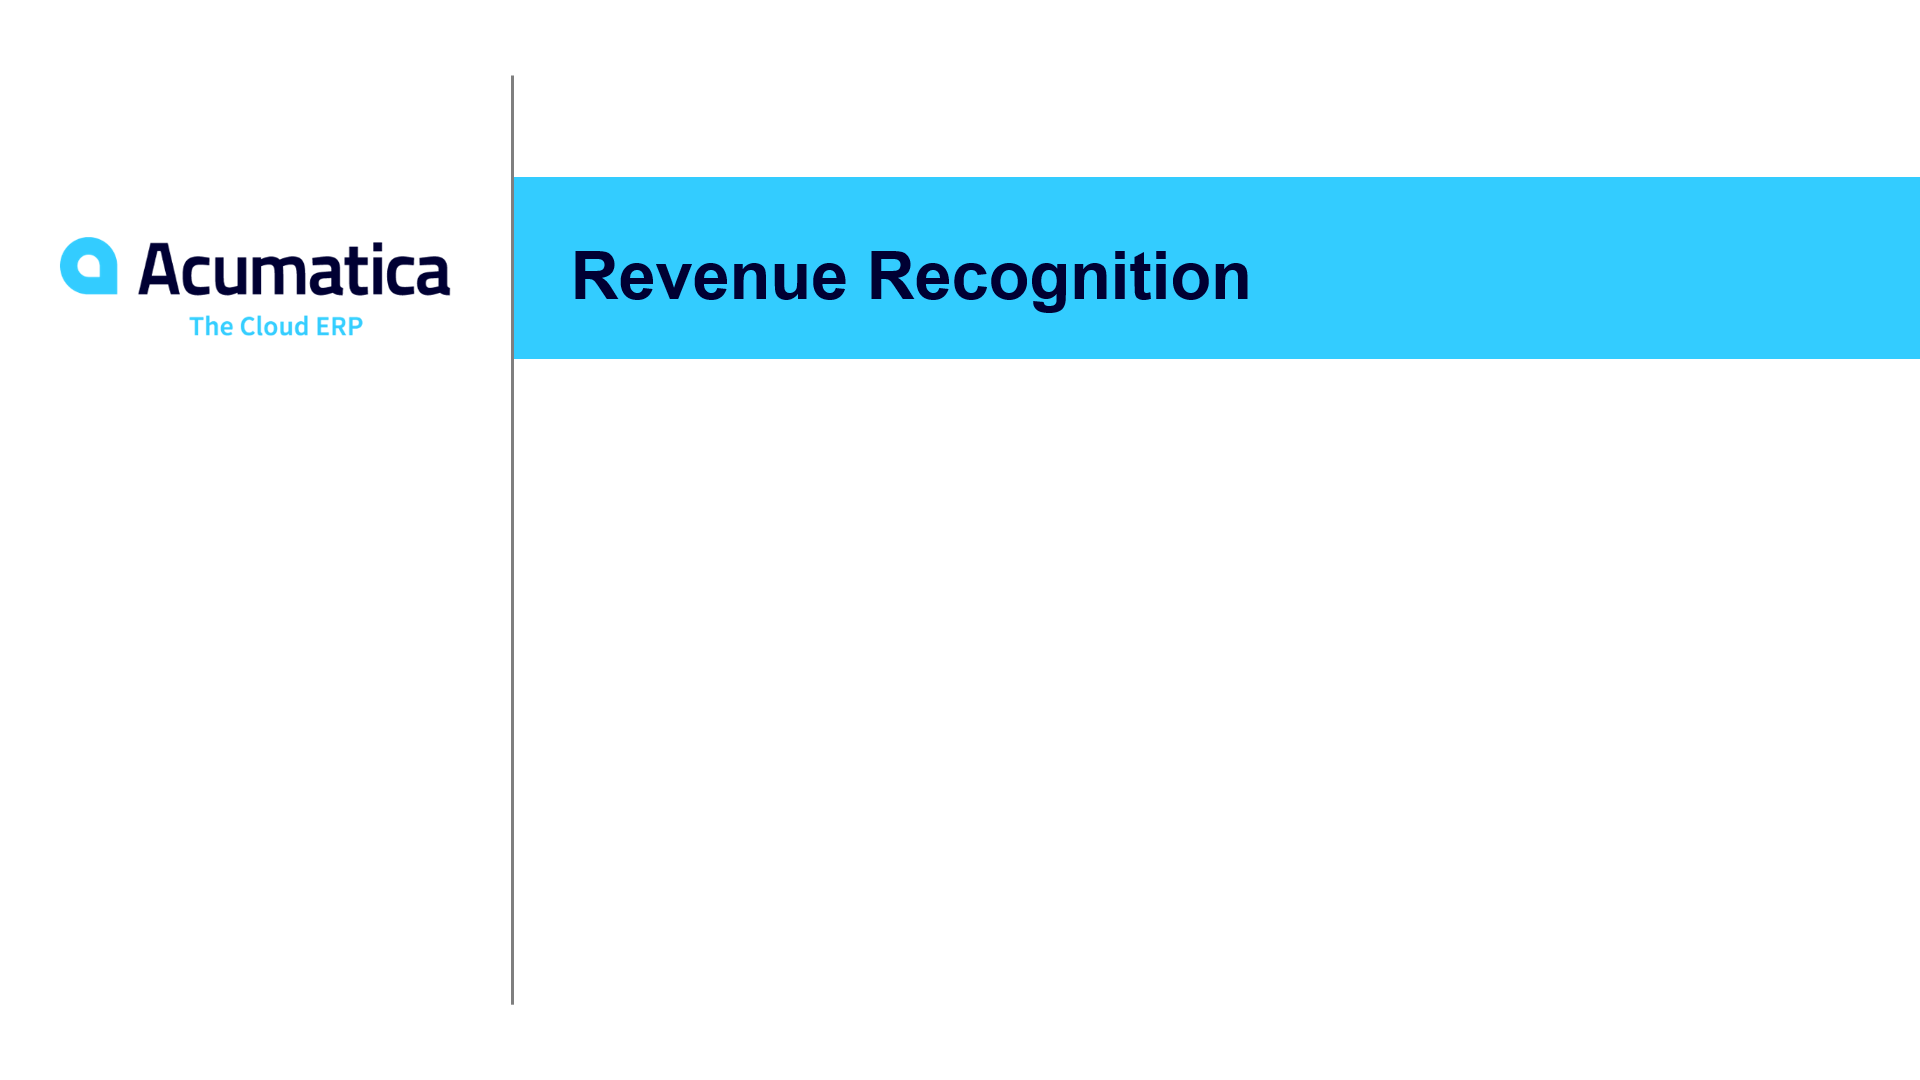 Revenue Recognition (March 2020)